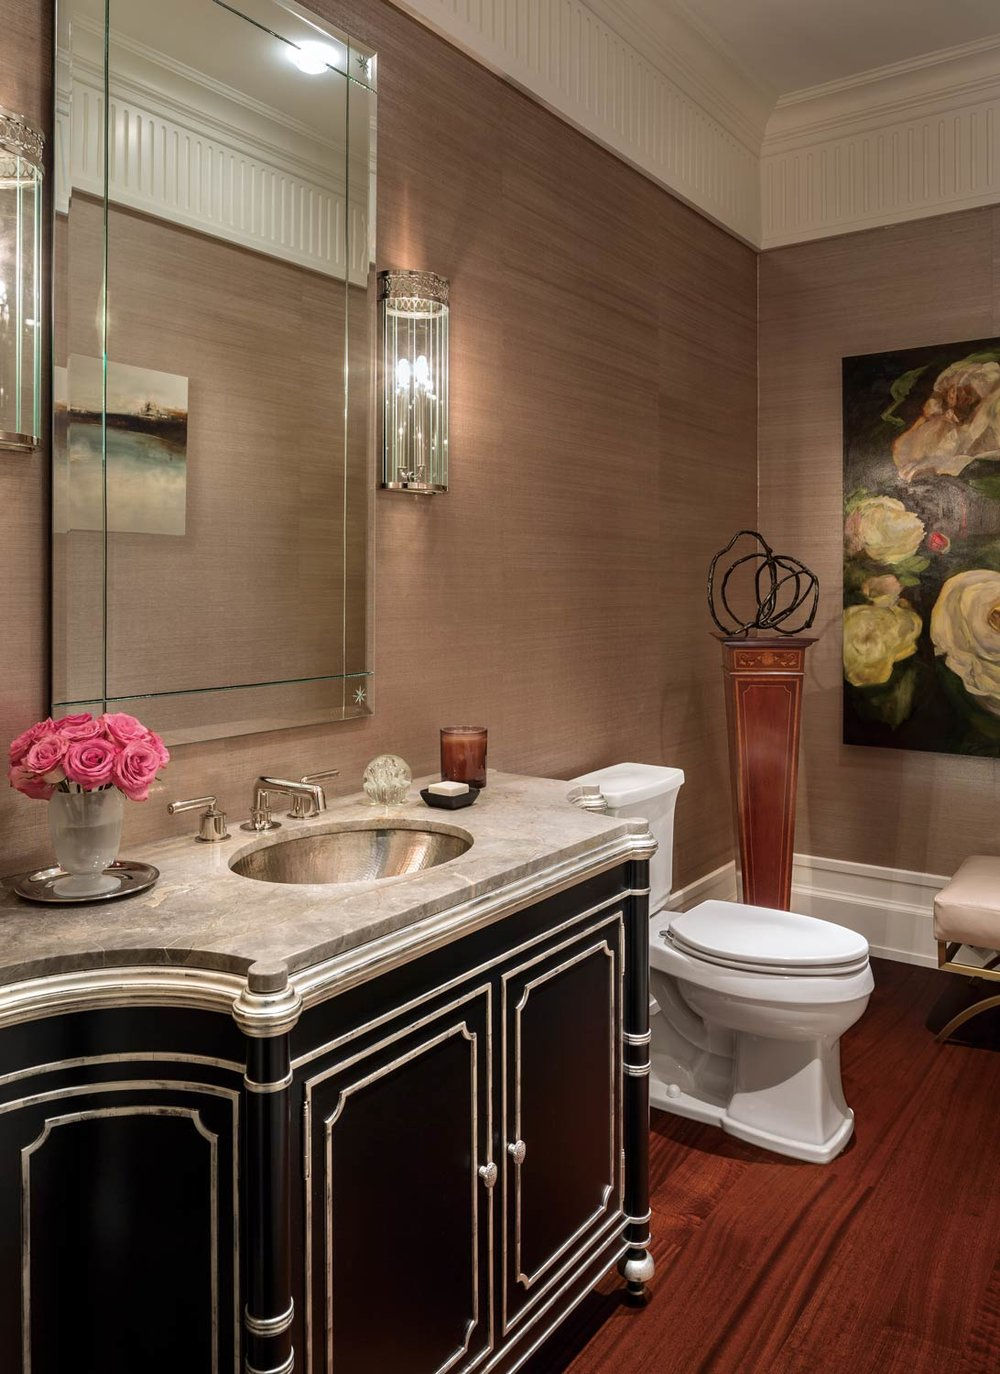 One of the guest bathrooms is hung with silk grasscloth wallpaper by Phillip Jeffries. The painting of white peonies is by local Vancouver artist Bobbie Burgers.